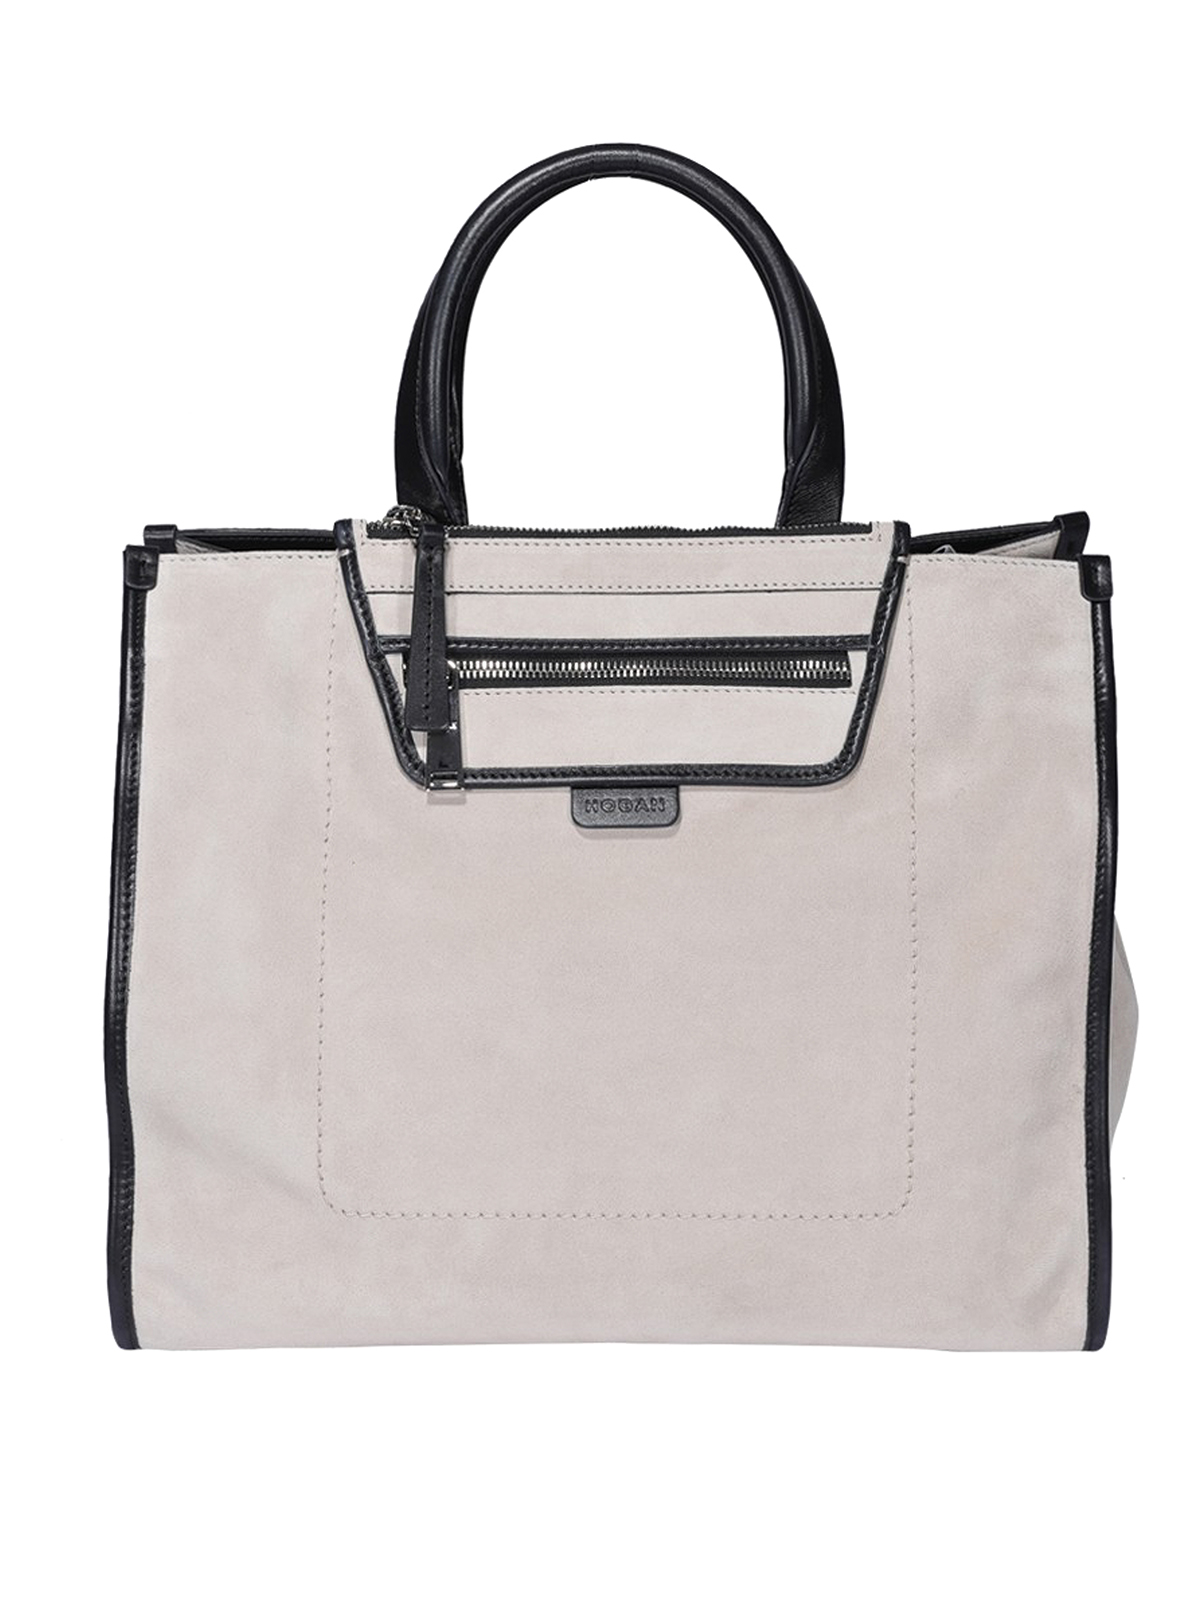 Hogan H01H MEDIUM TOTE